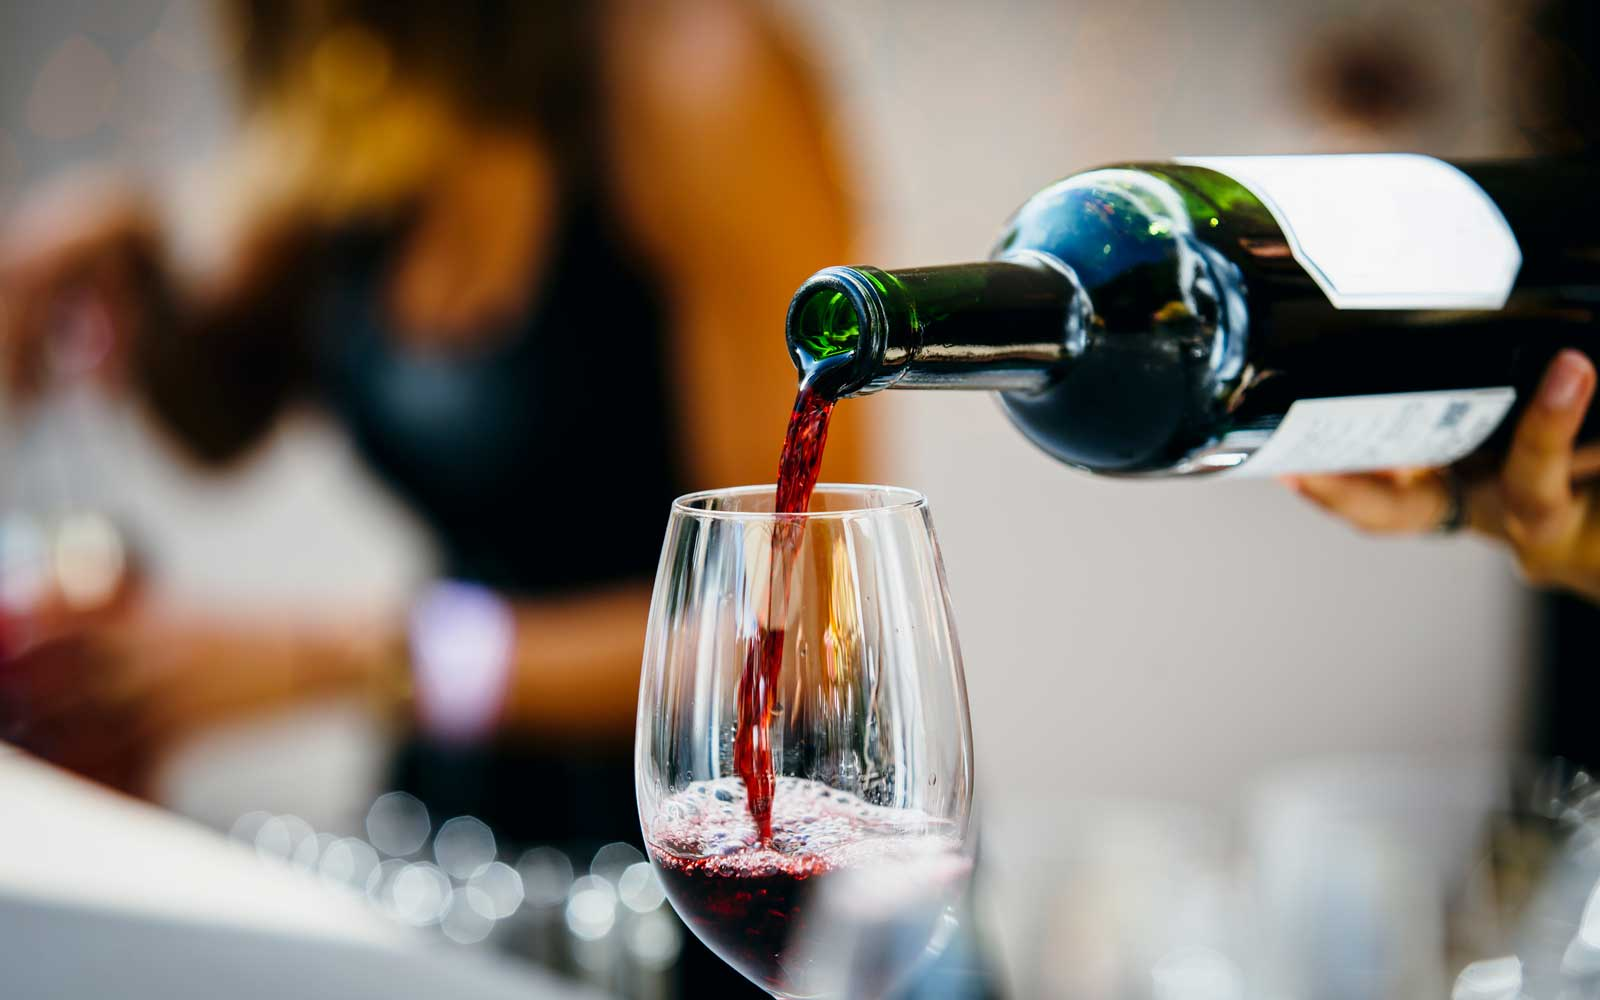 A Restaurant in England Accidentally Gave a Customer a $5,800 Bottle of Wine